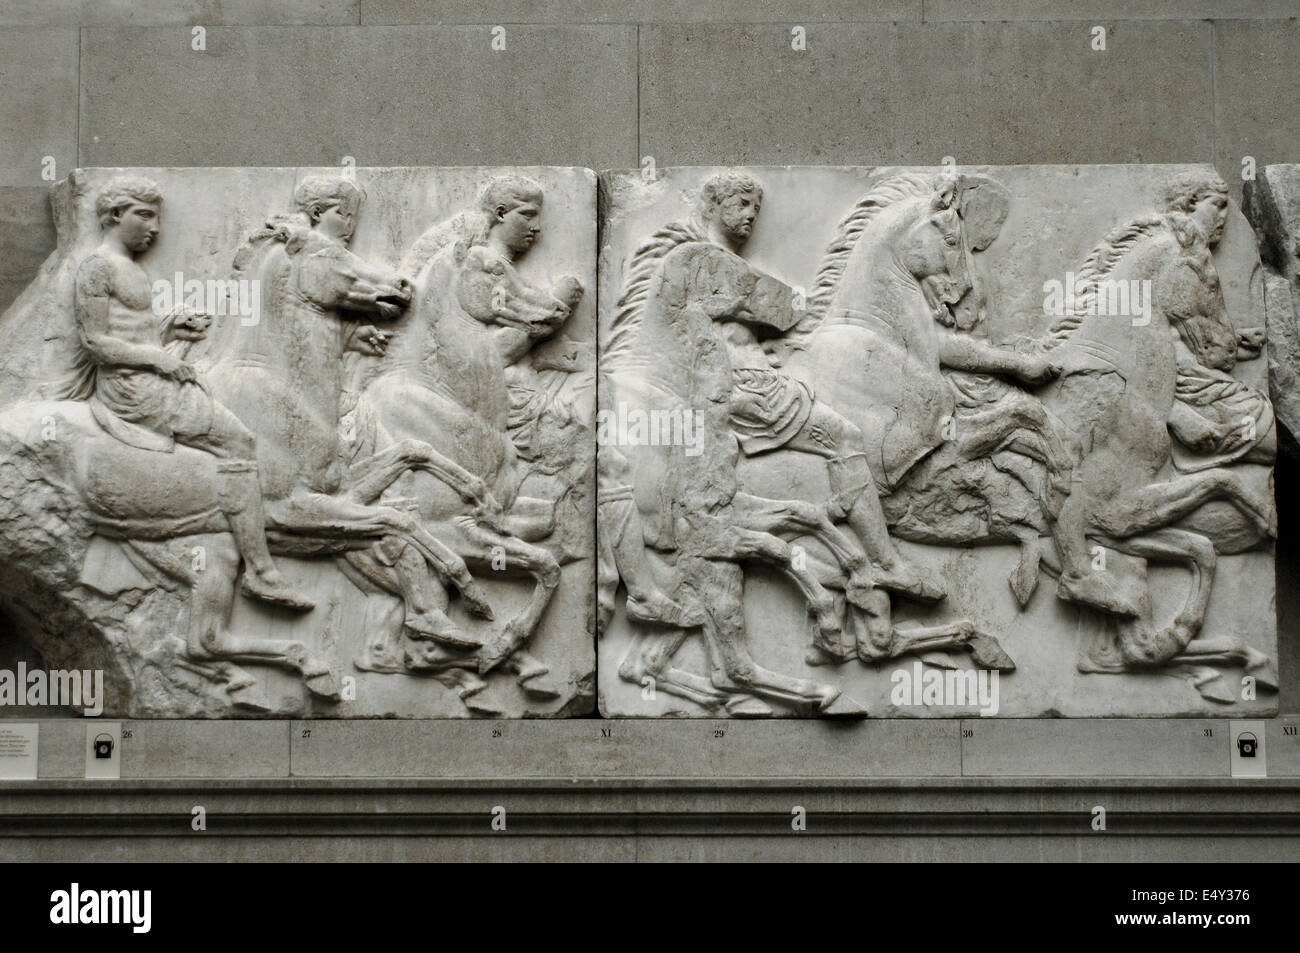 South Frieze of the Parthenon. Cavalry. The Acropolis, Athens, Greece. 438-432 BC. British Museum. London. United - Stock Image